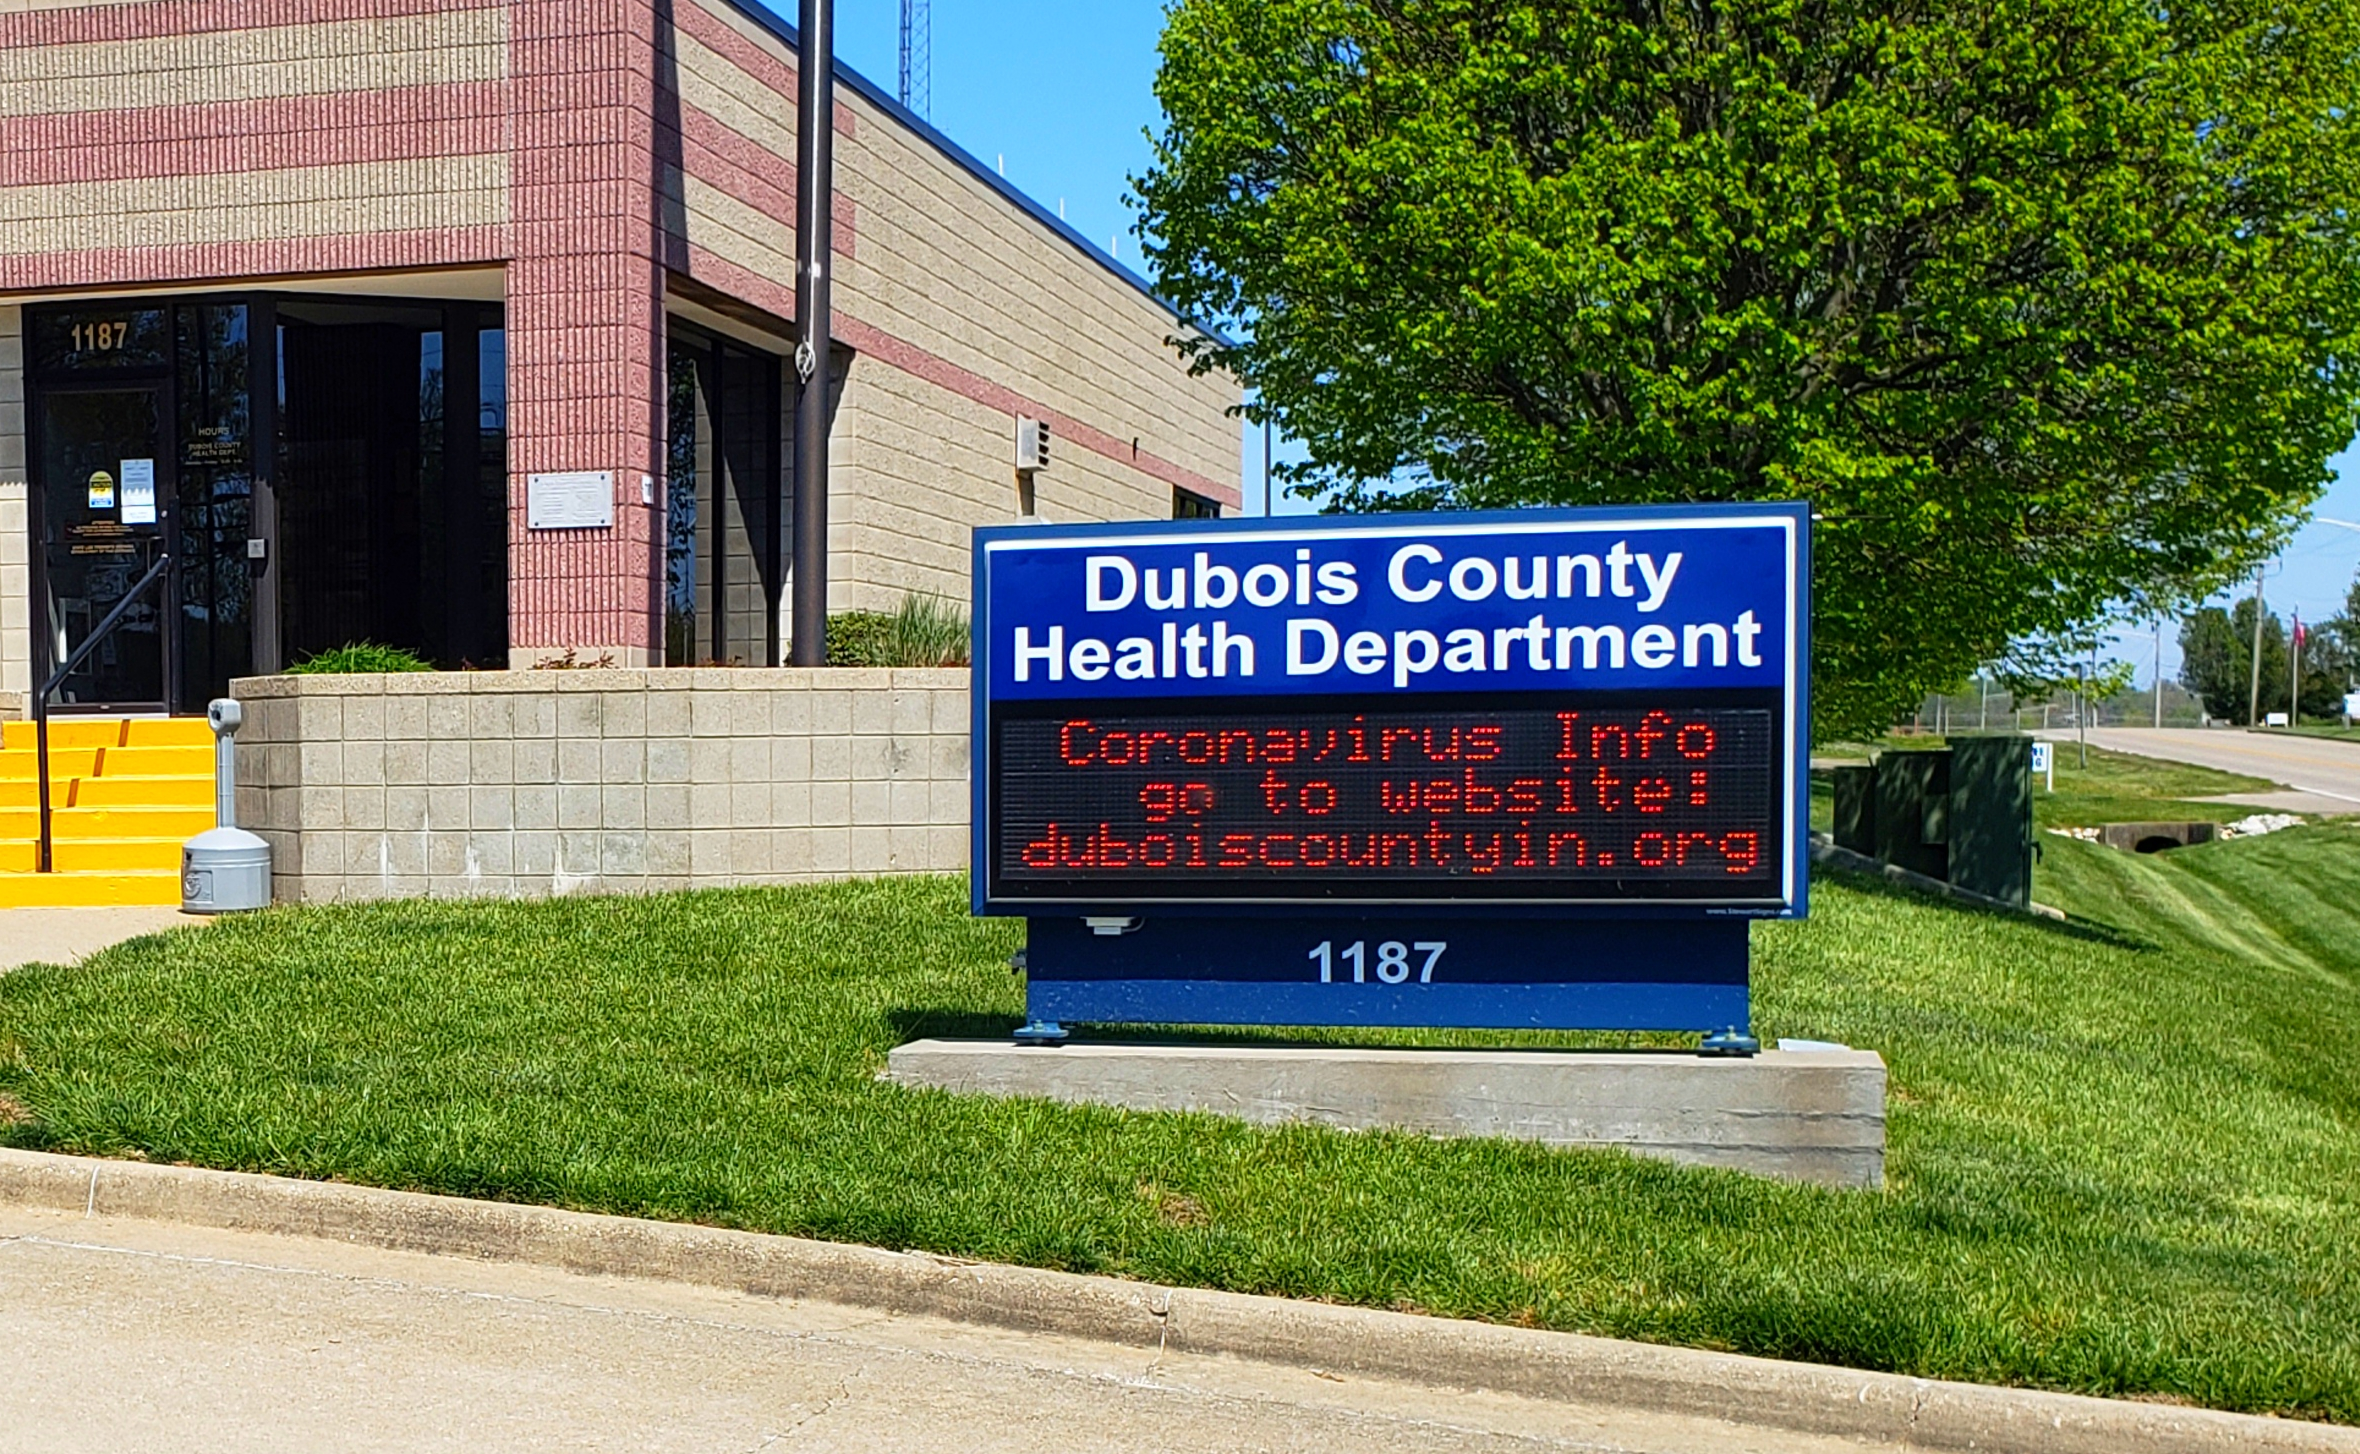 Two New Cases of COVID-19 Identified in Dubois County Sunday